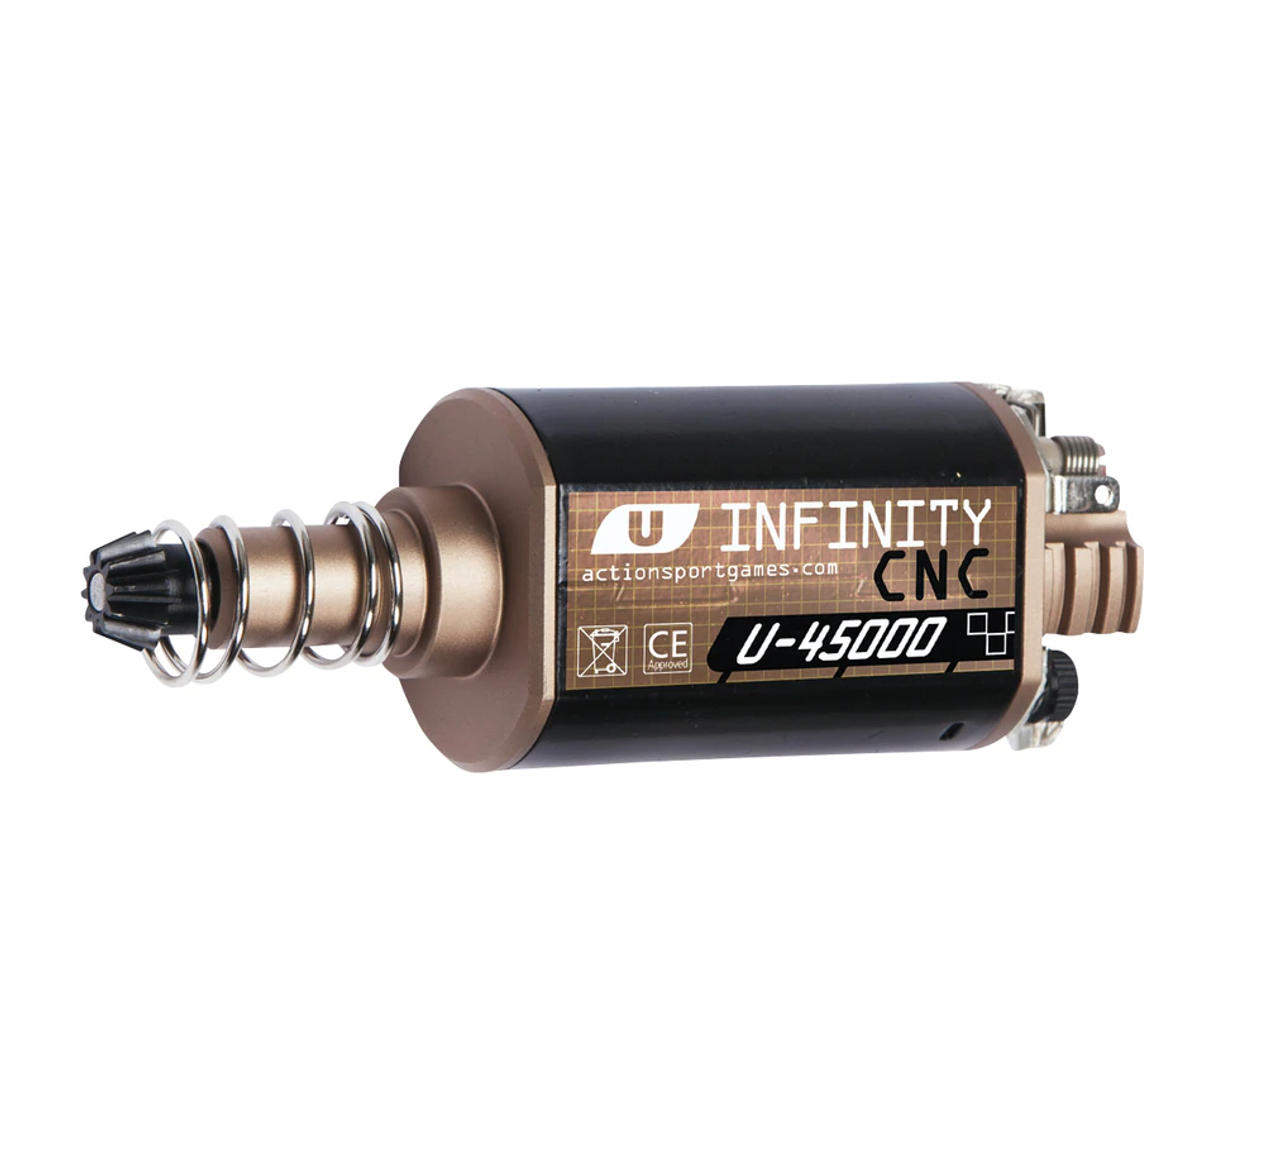 Upgraded Airsoft Motors for Electric Airsoft Guns